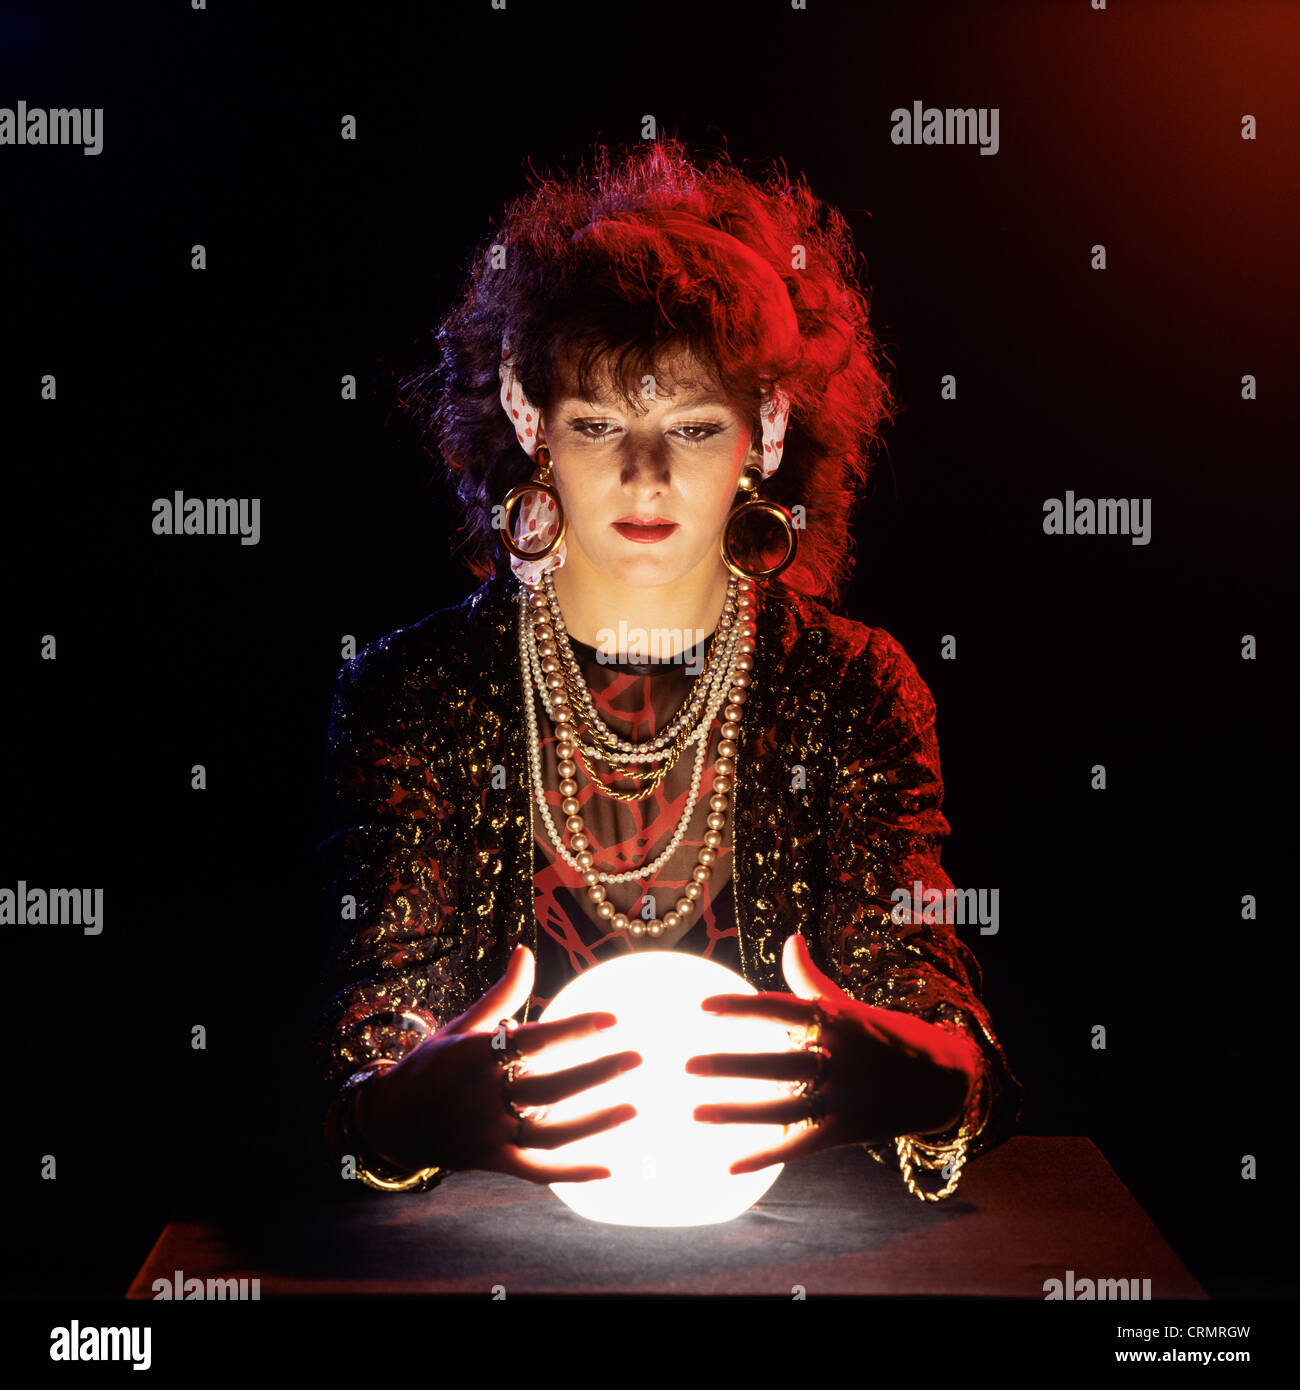 Gipsy fortune teller with lit crystal ball - Stock Image